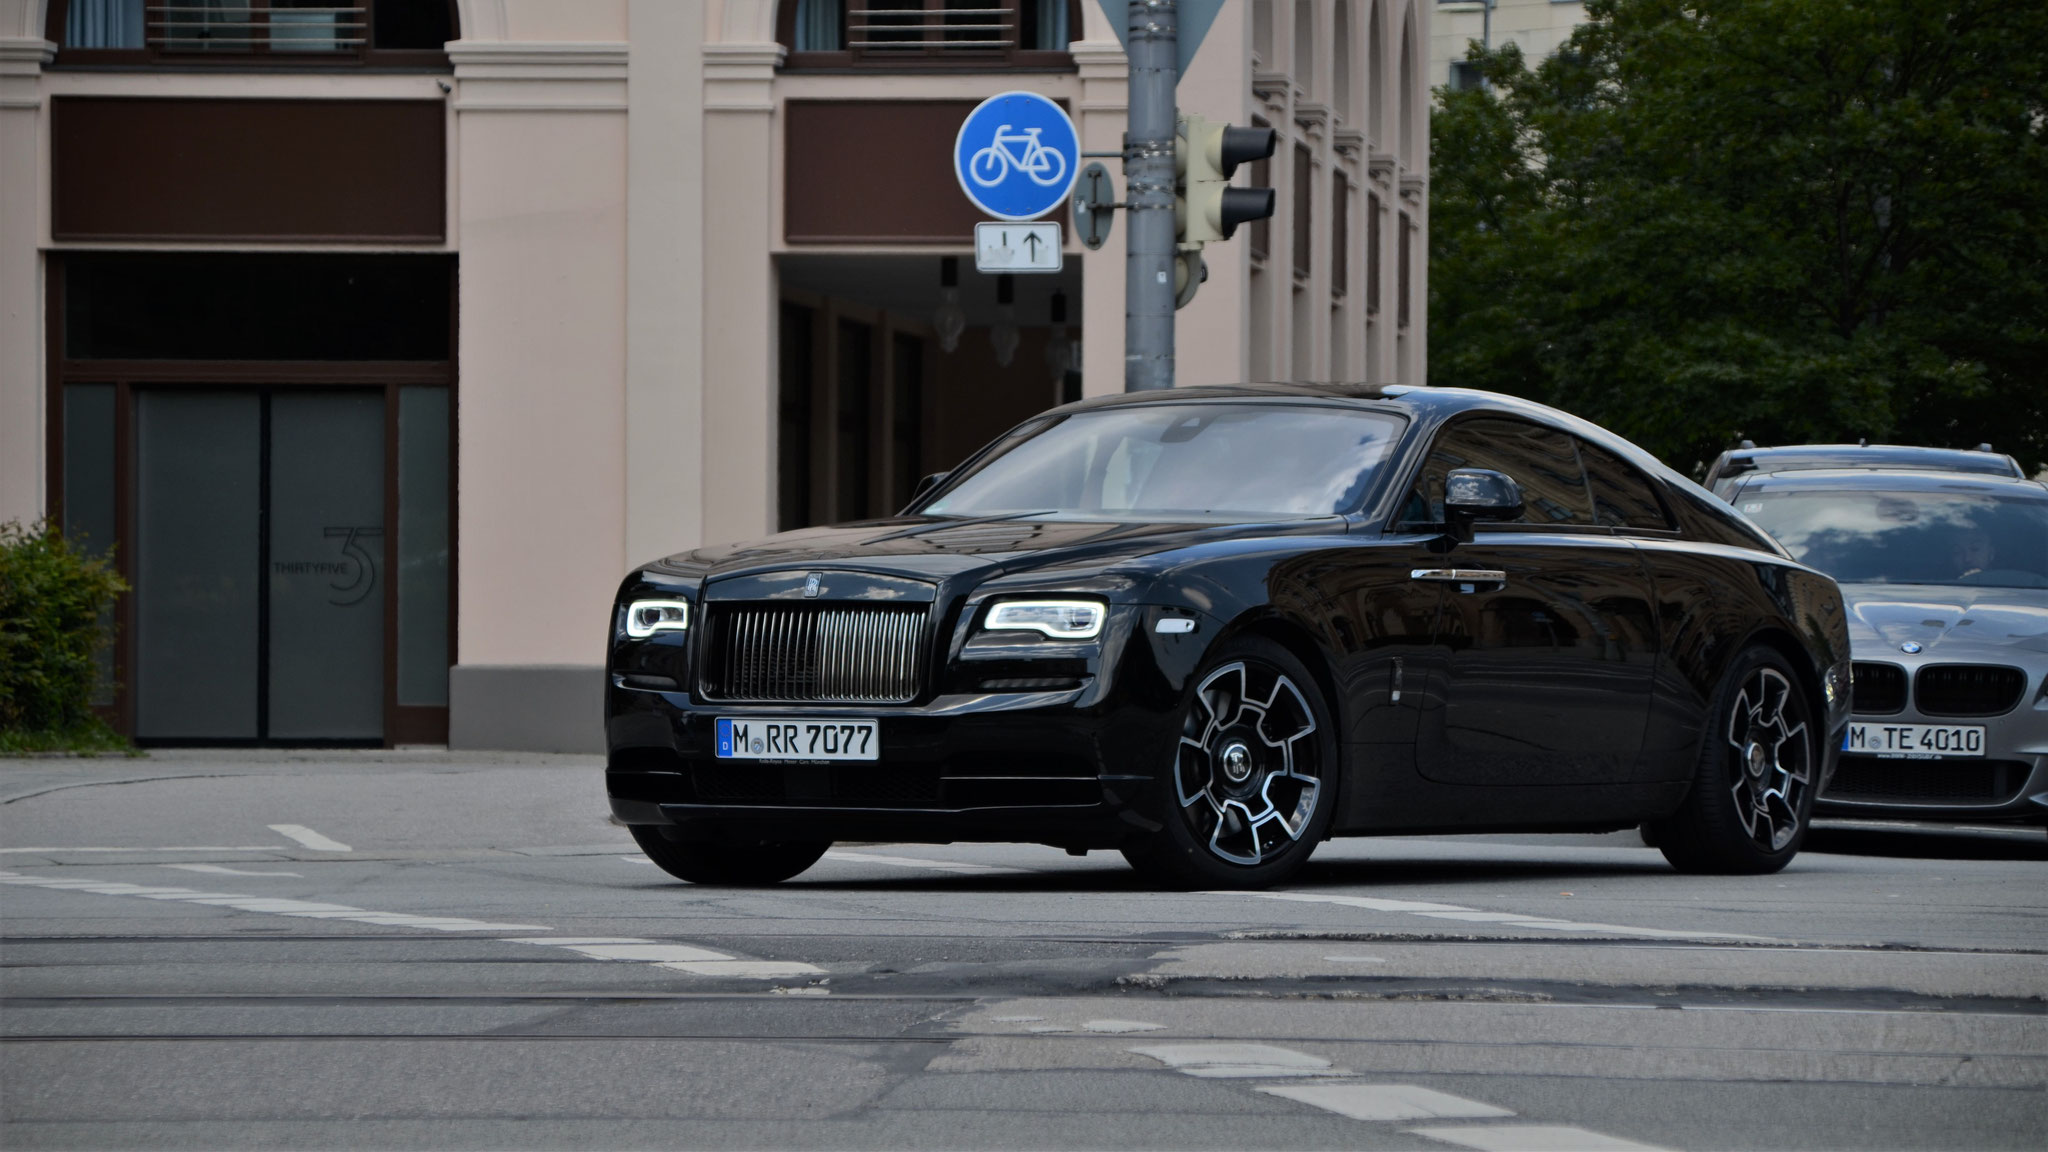 Rolls Royce Wraith Black Badge - M-RR-7077